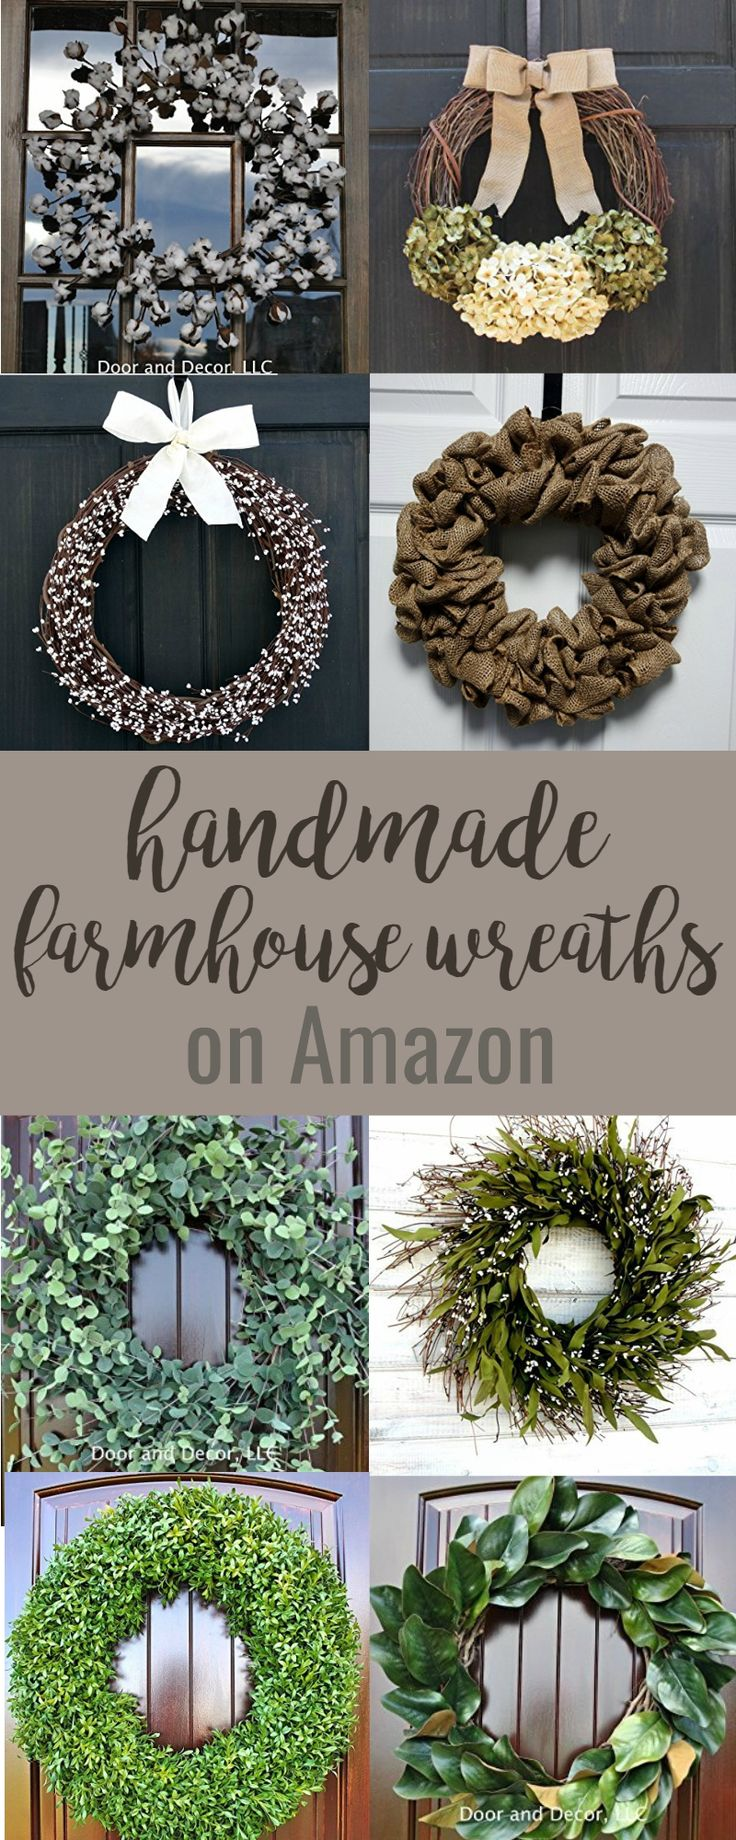 Handmade Farmhouse Wreaths {On Amazon}